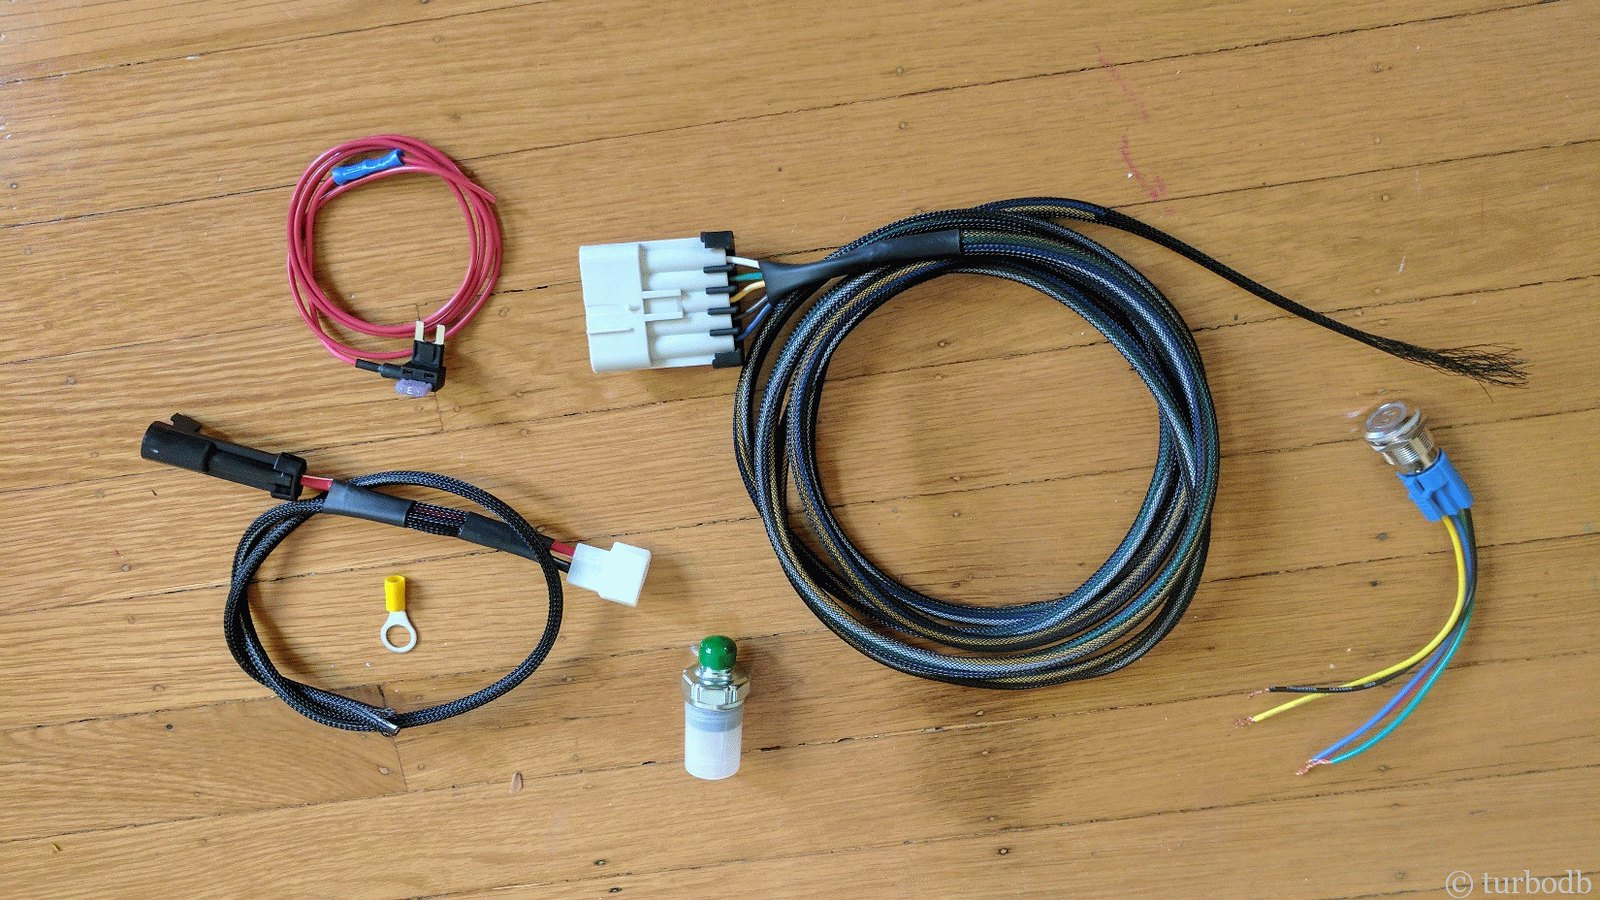 hight resolution of  fall arb ckma wiring harness on electrical harness alpine stereo harness fall protection harness